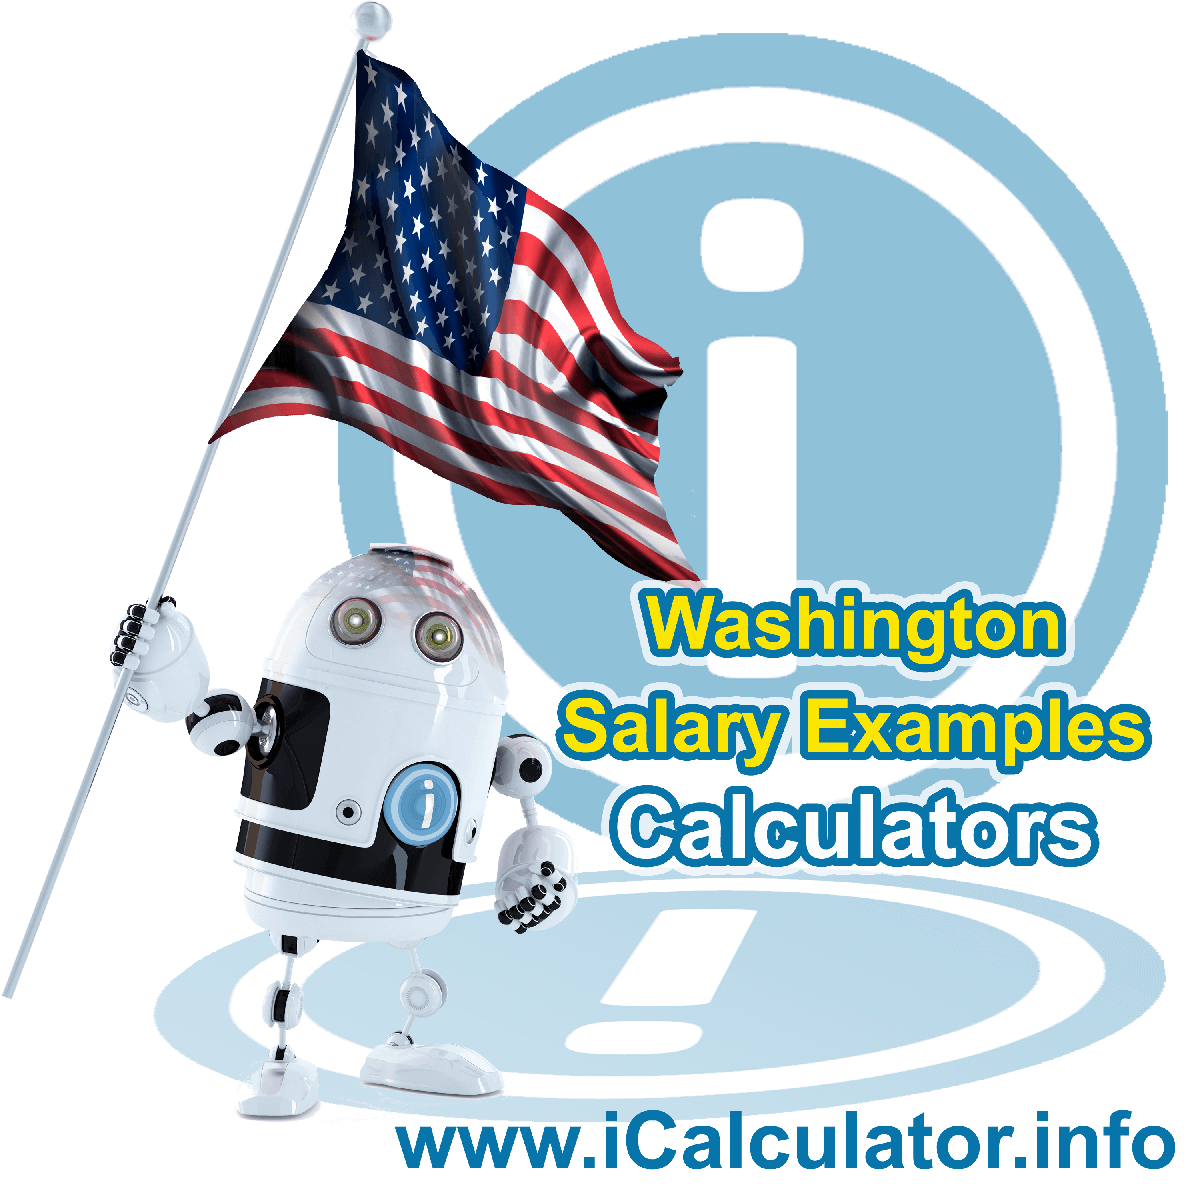 Washington Salary Example for $75,000.00 in 2020 | iCalculator | $75,000.00 salary example for employee and employer paying Washington State tincome taxes. Detailed salary after tax calculation including Washington State Tax, Federal State Tax, Medicare Deductions, Social Security, Capital Gains and other income tax and salary deductions complete with supporting Washington state tax tables